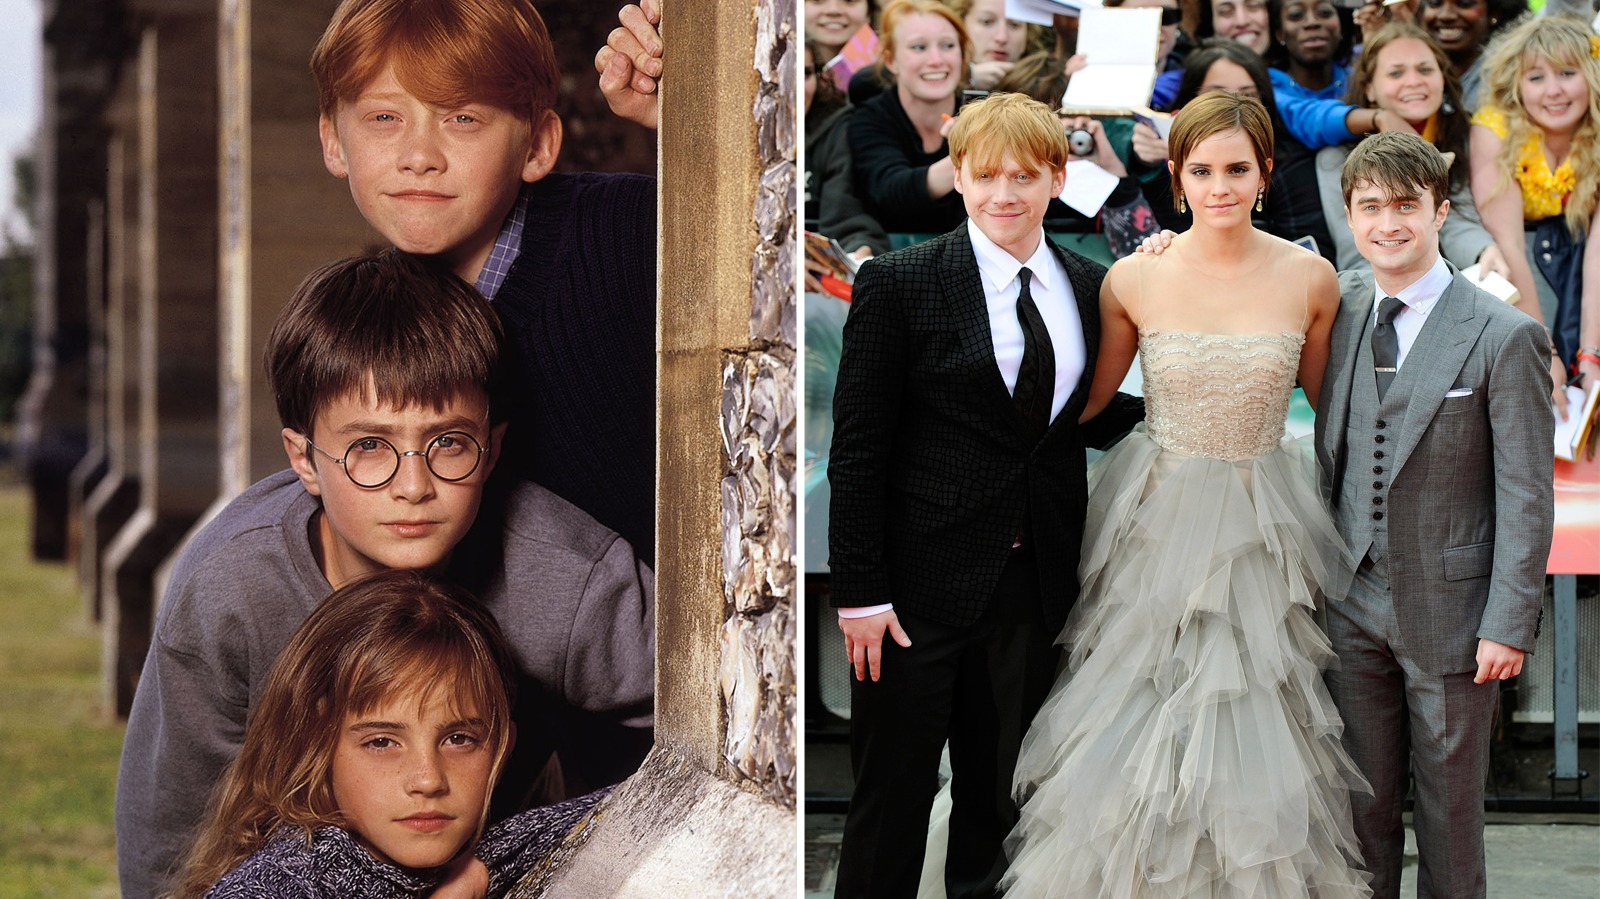 It's 15 years since Daniel Radcliffe, Rupert Grint and ...